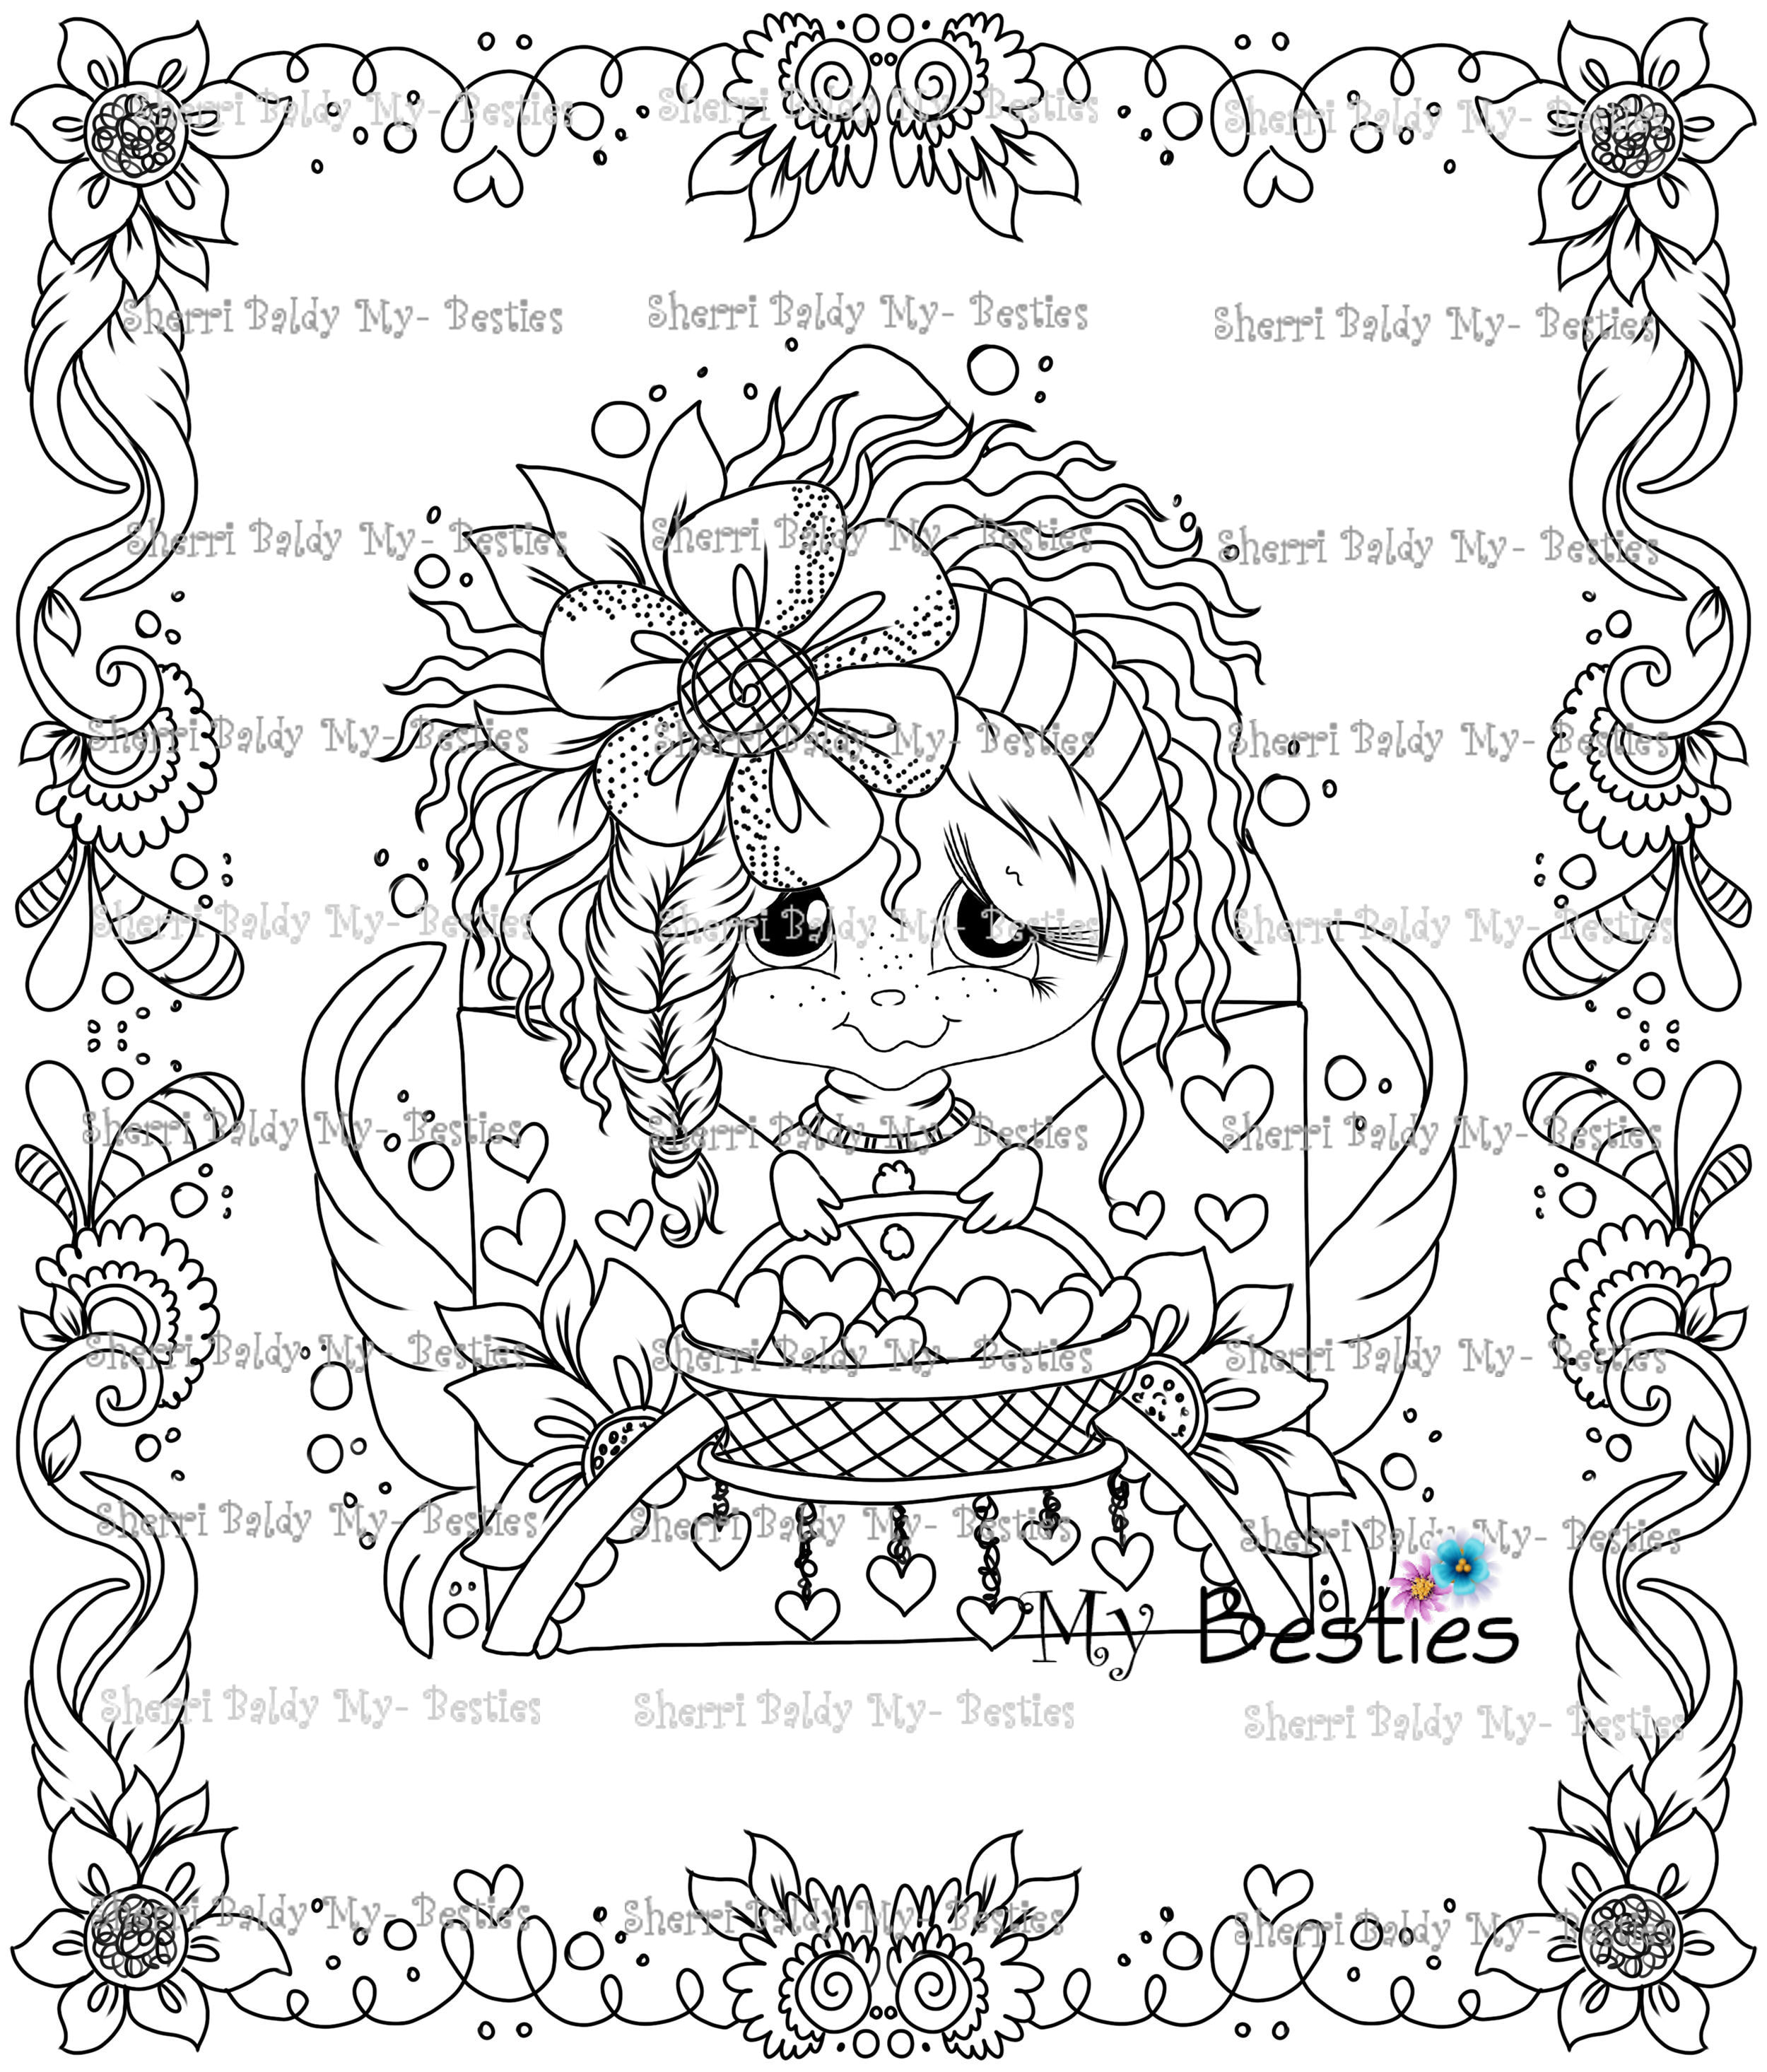 Instant Download My Besties Coloring Page Doll 22~Digi